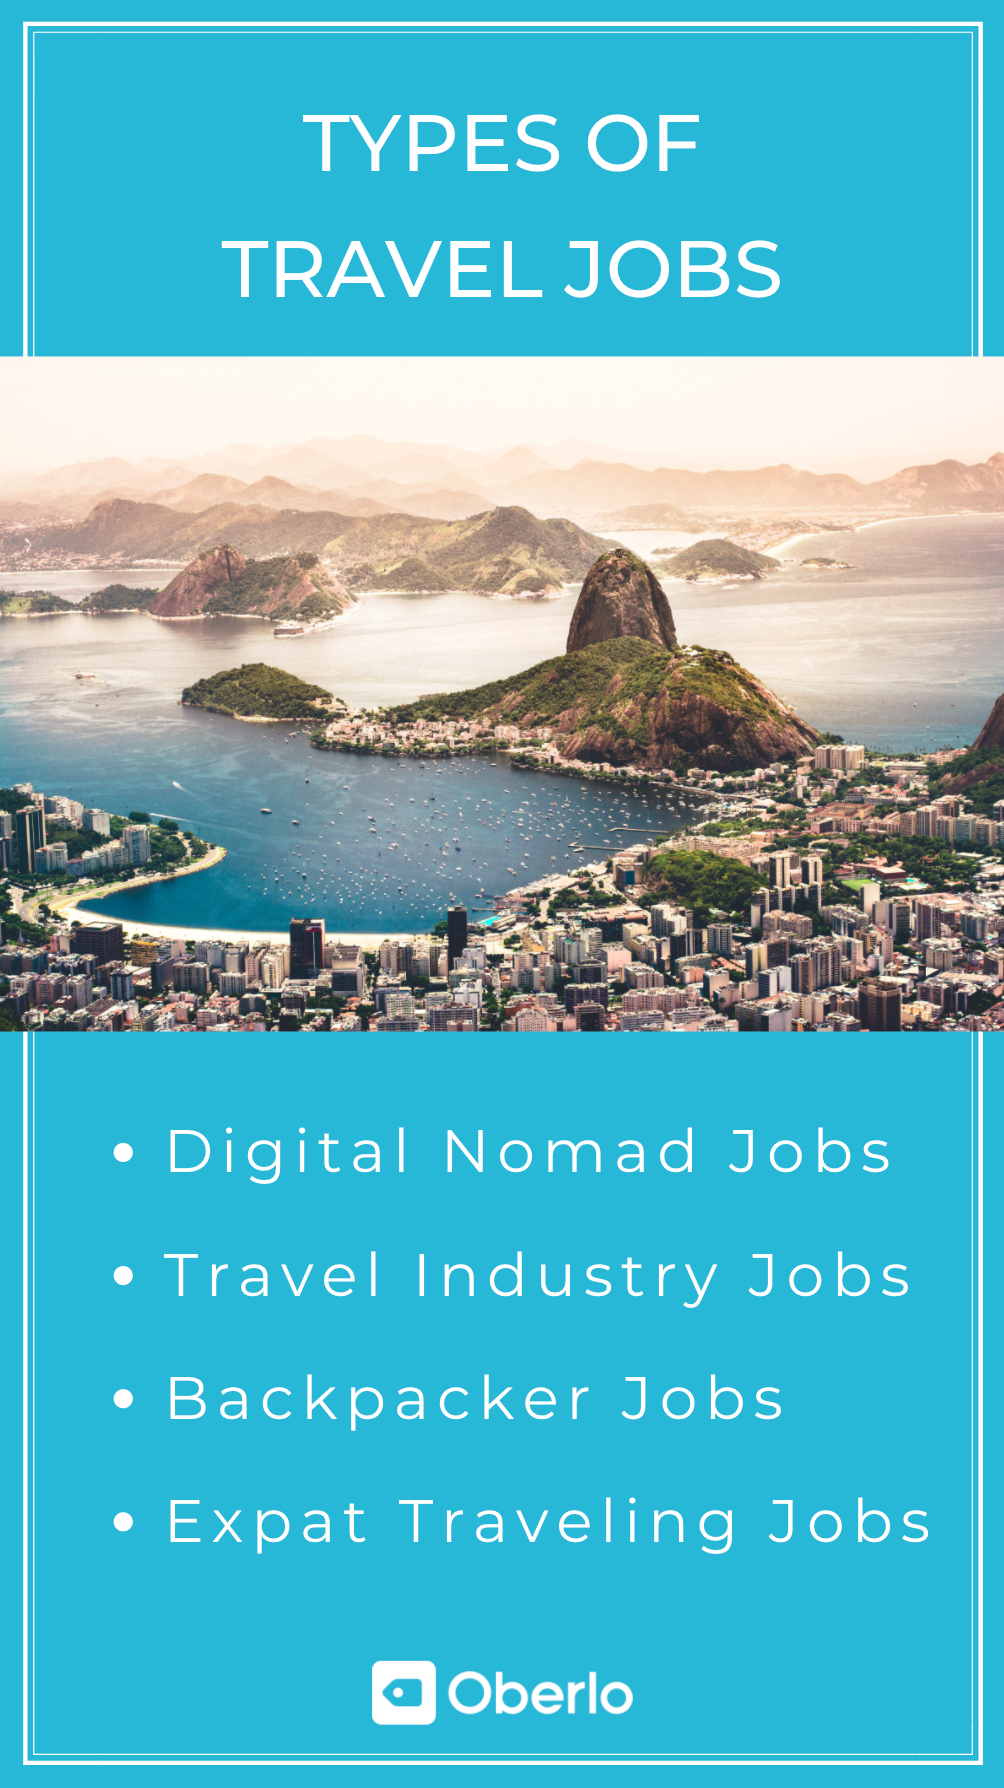 Types of Travel Jobs